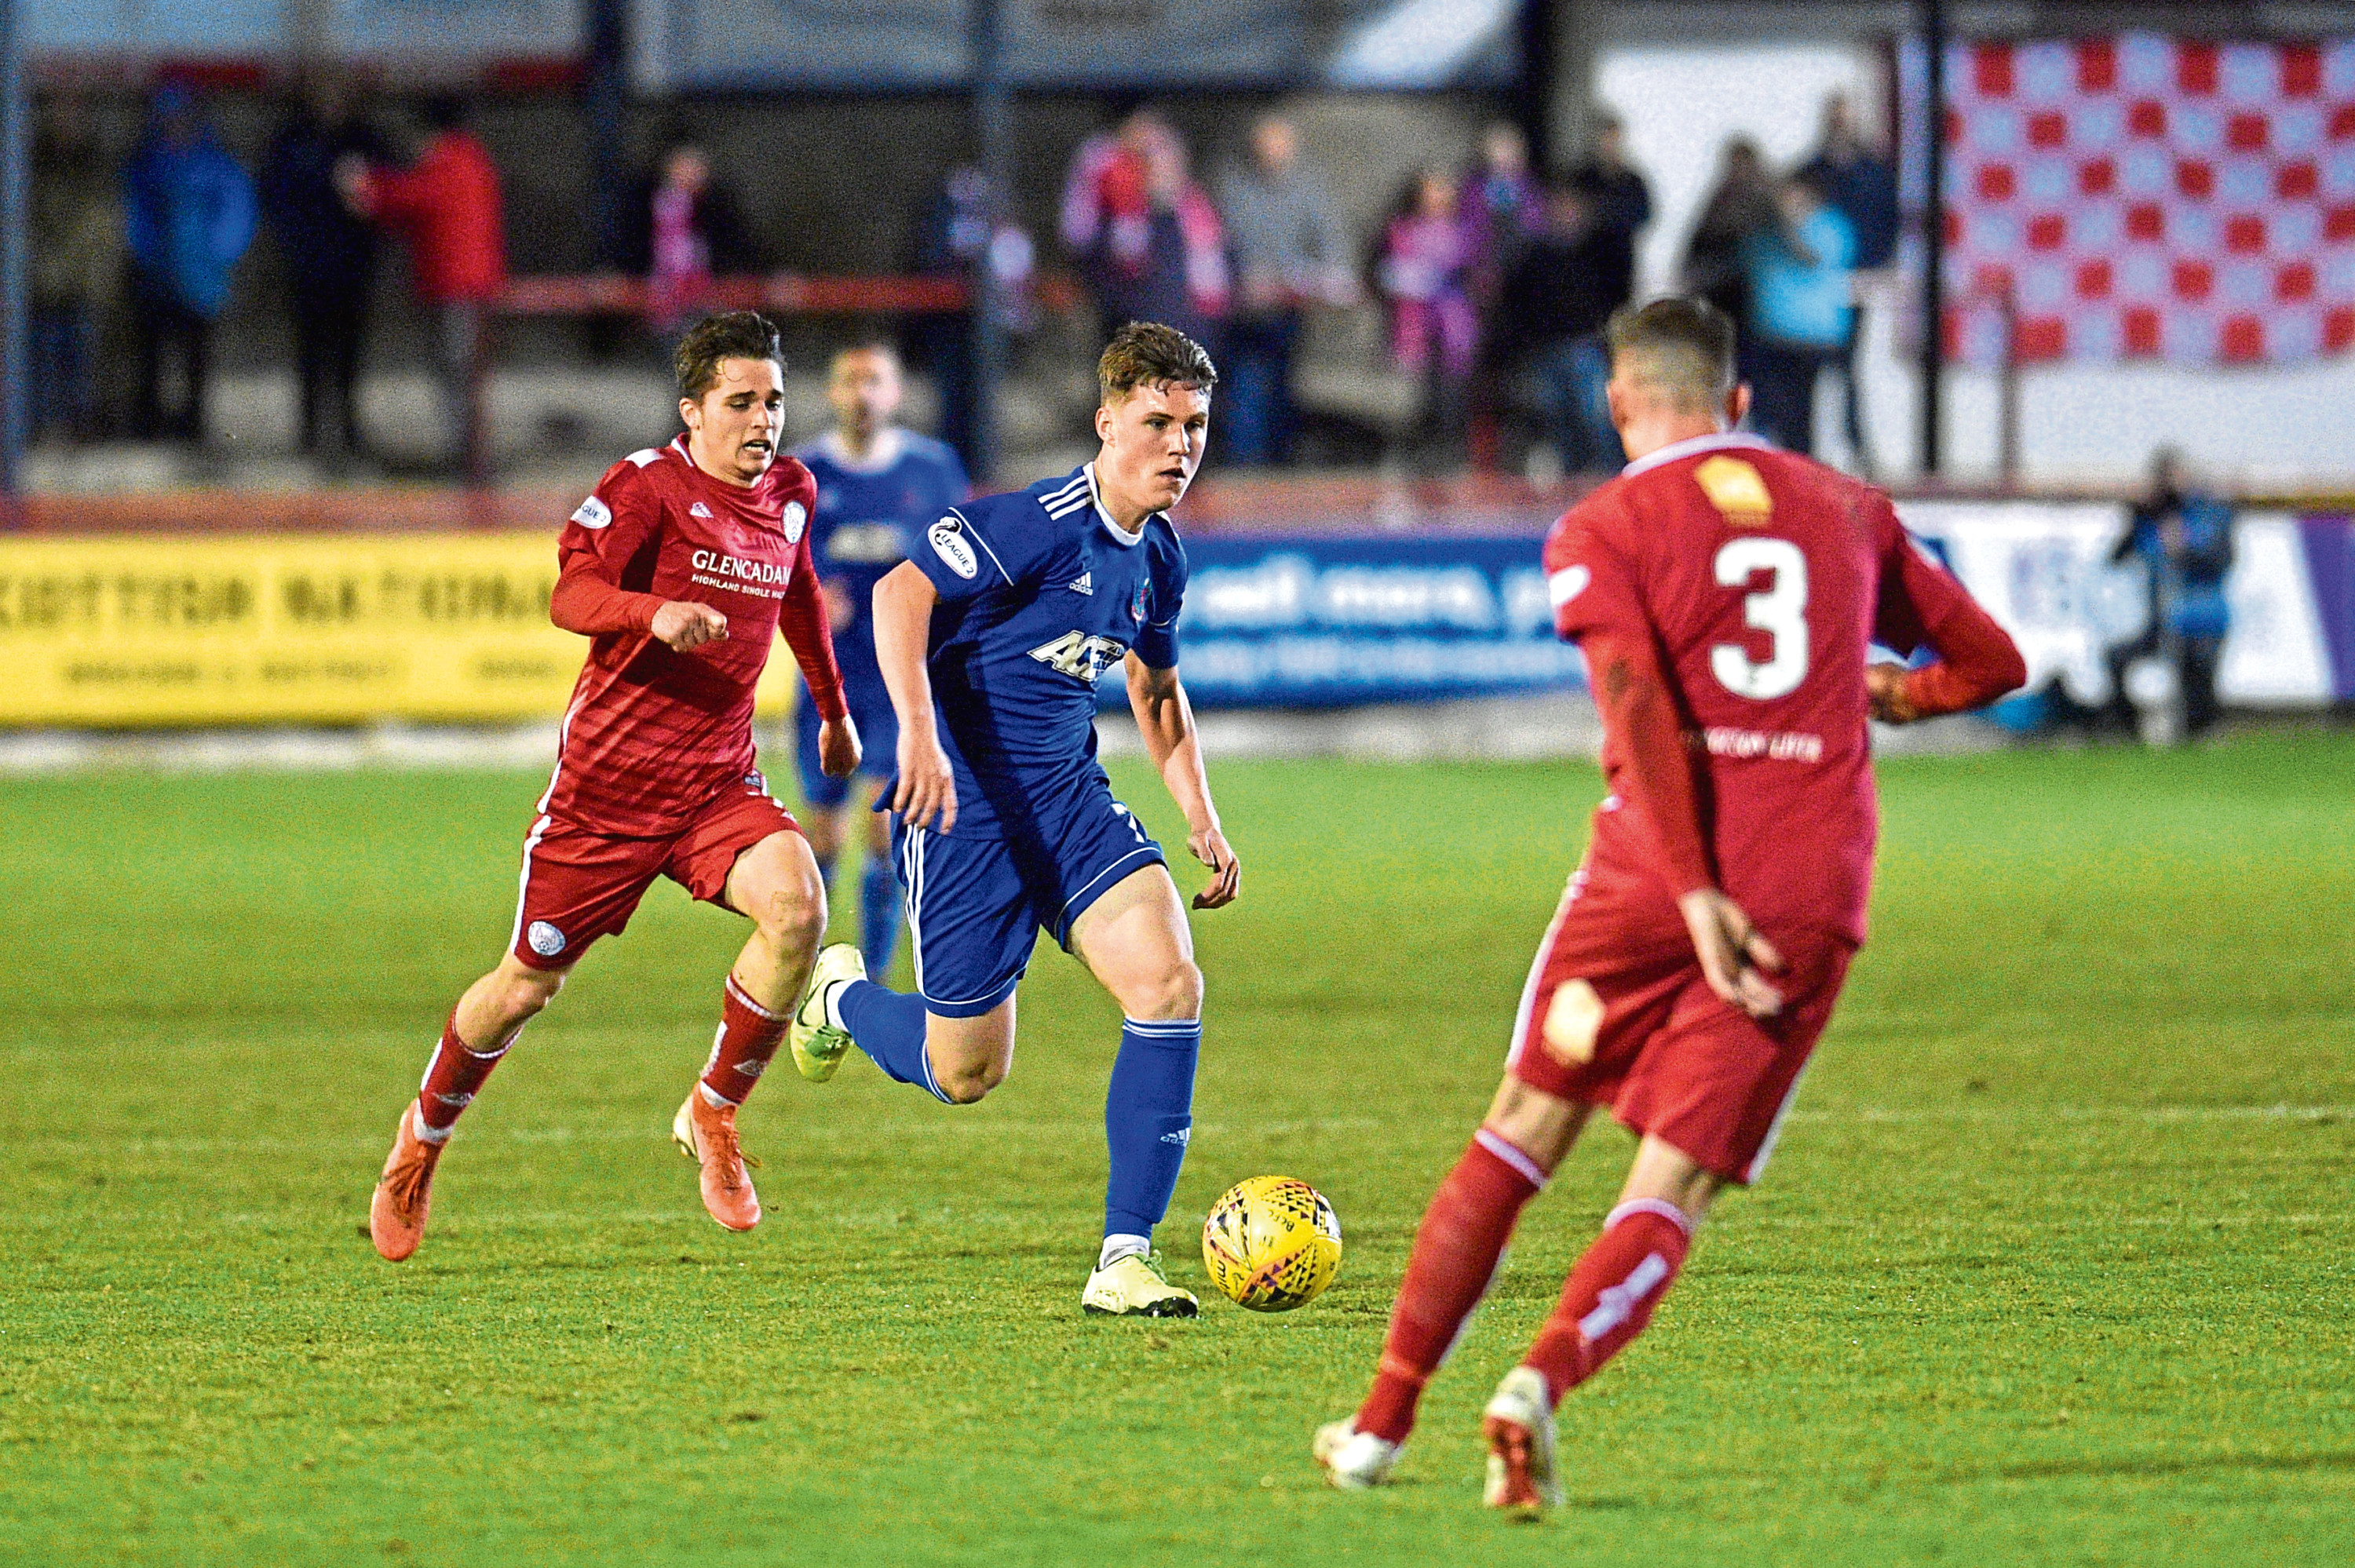 Josh Mulligan in action for Cove